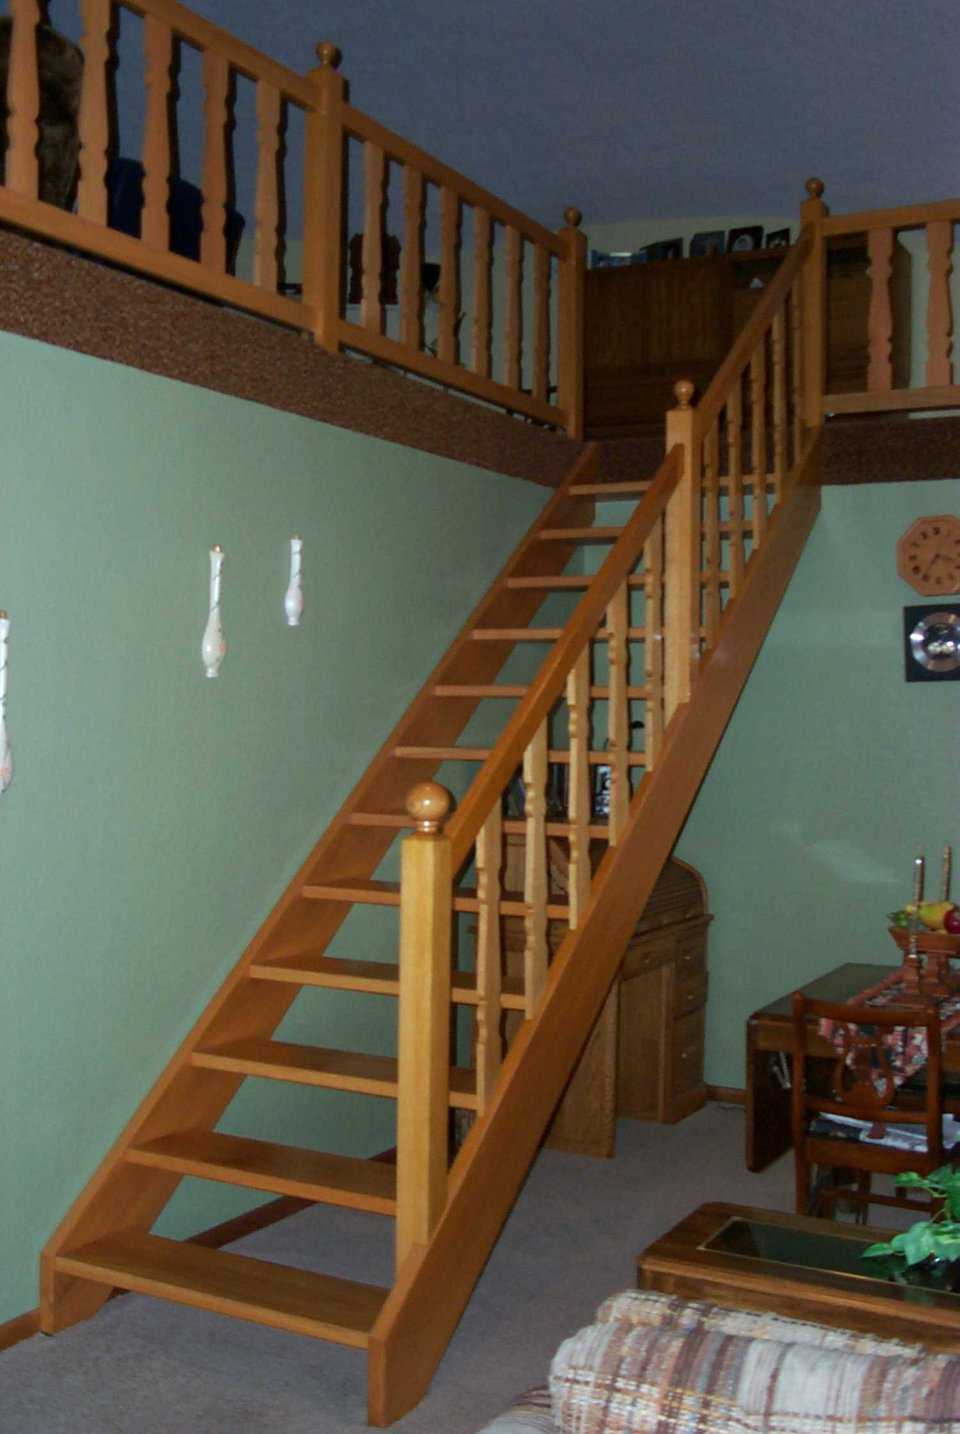 Going up! — The solid wooden staircase matches the wood trim in other areas of the home and leads to the upper loft.